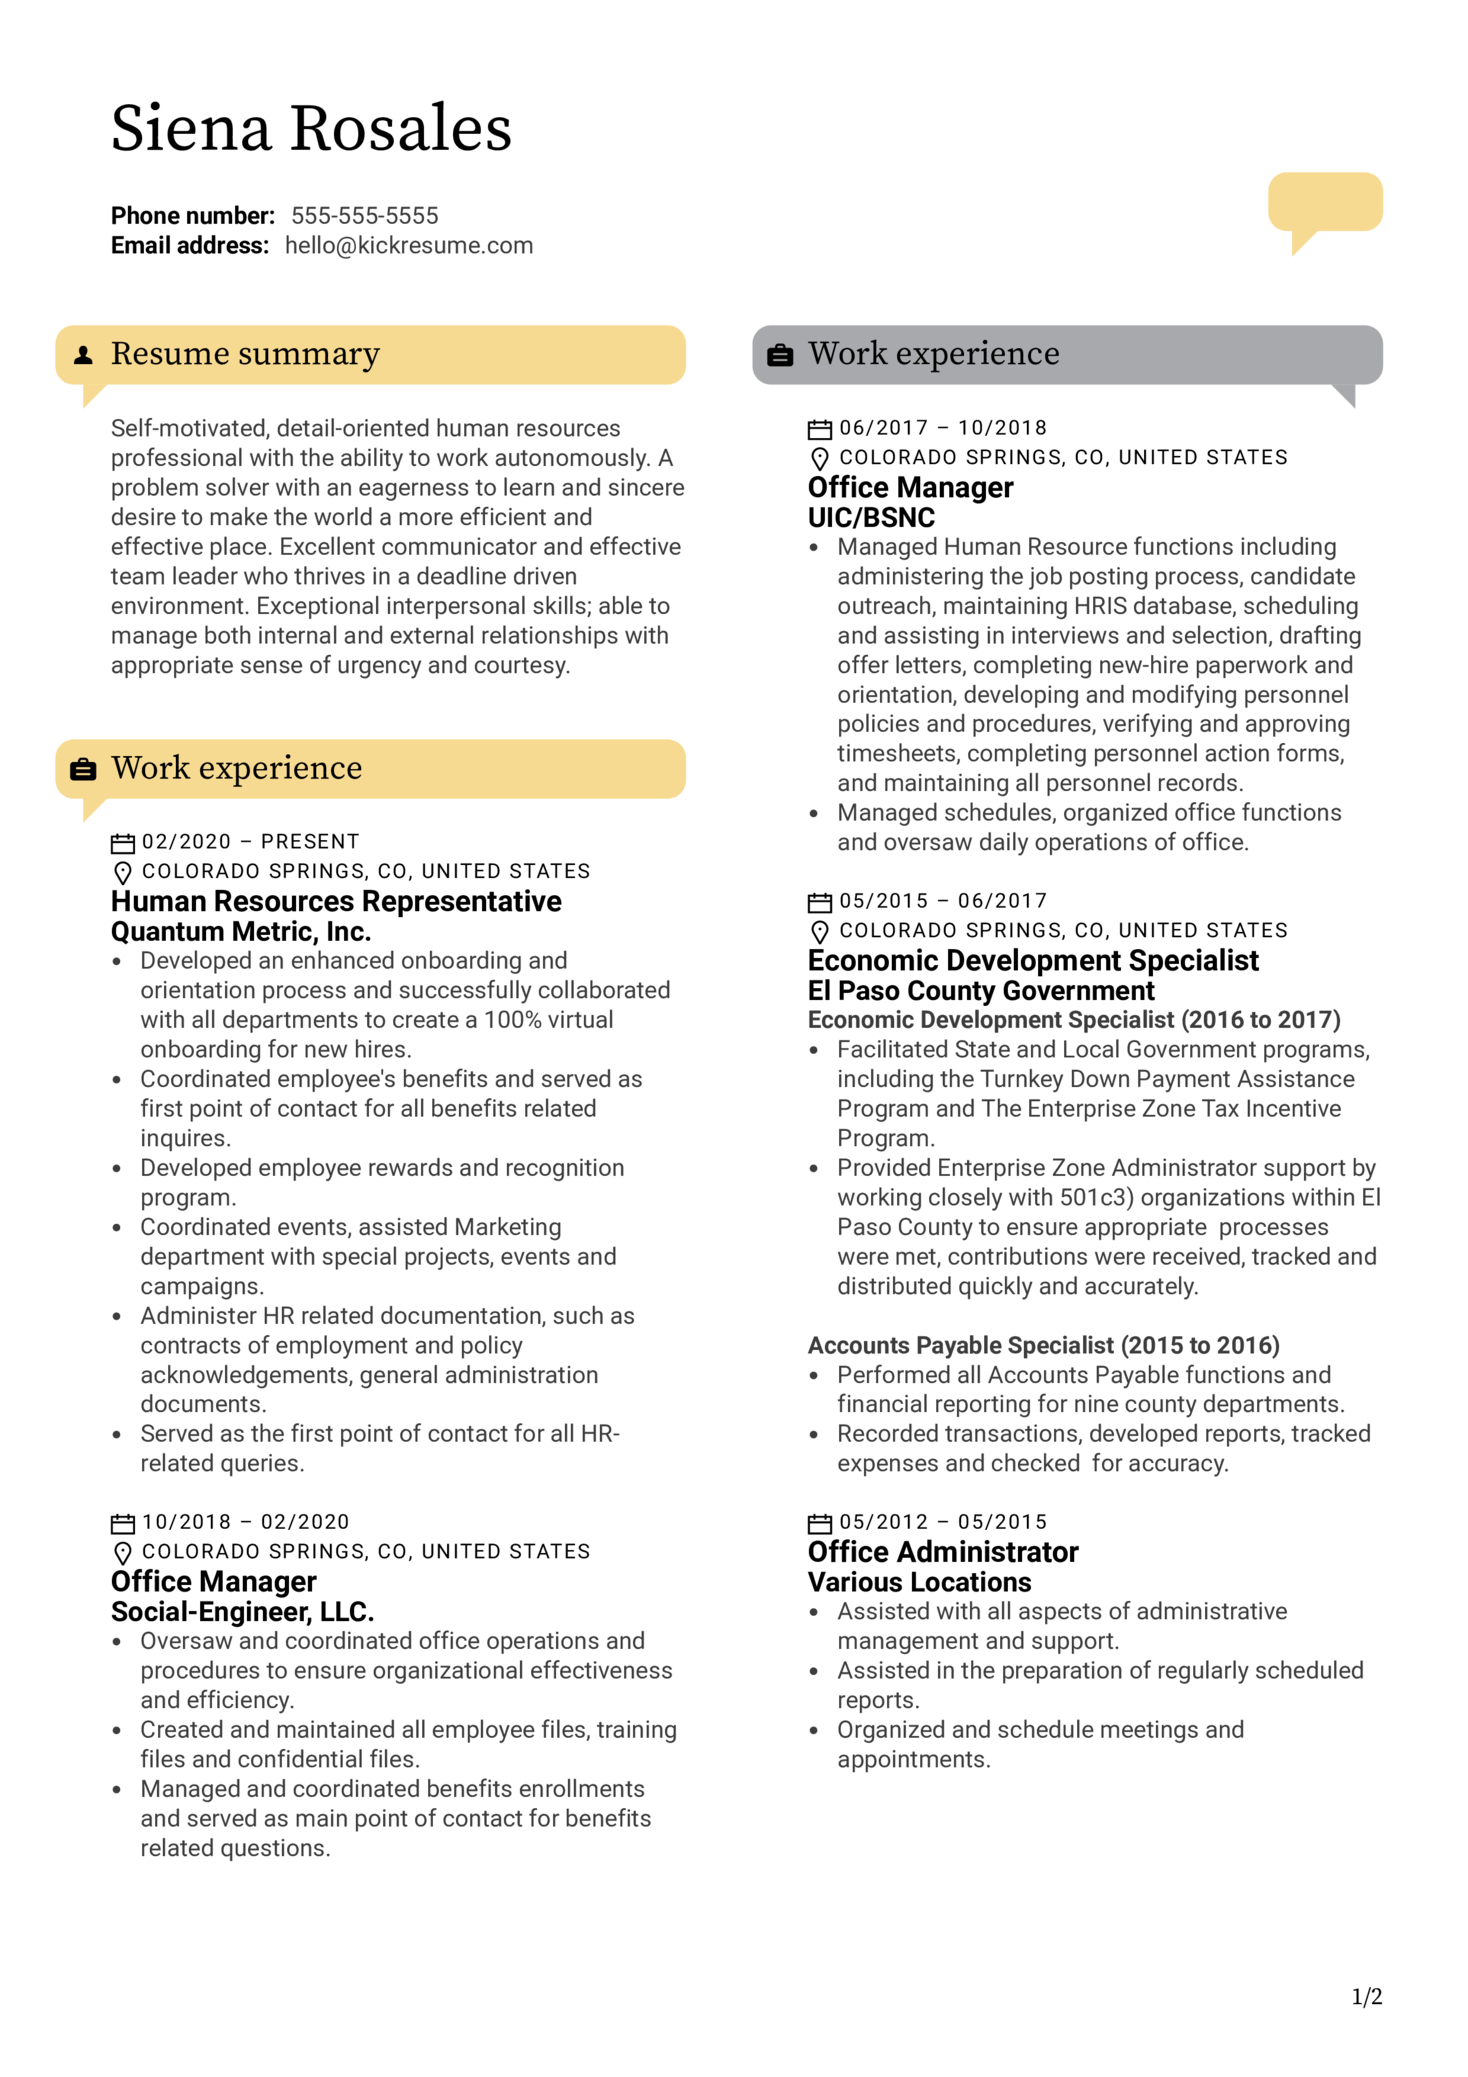 HR Representative Resume Example (parte 1)